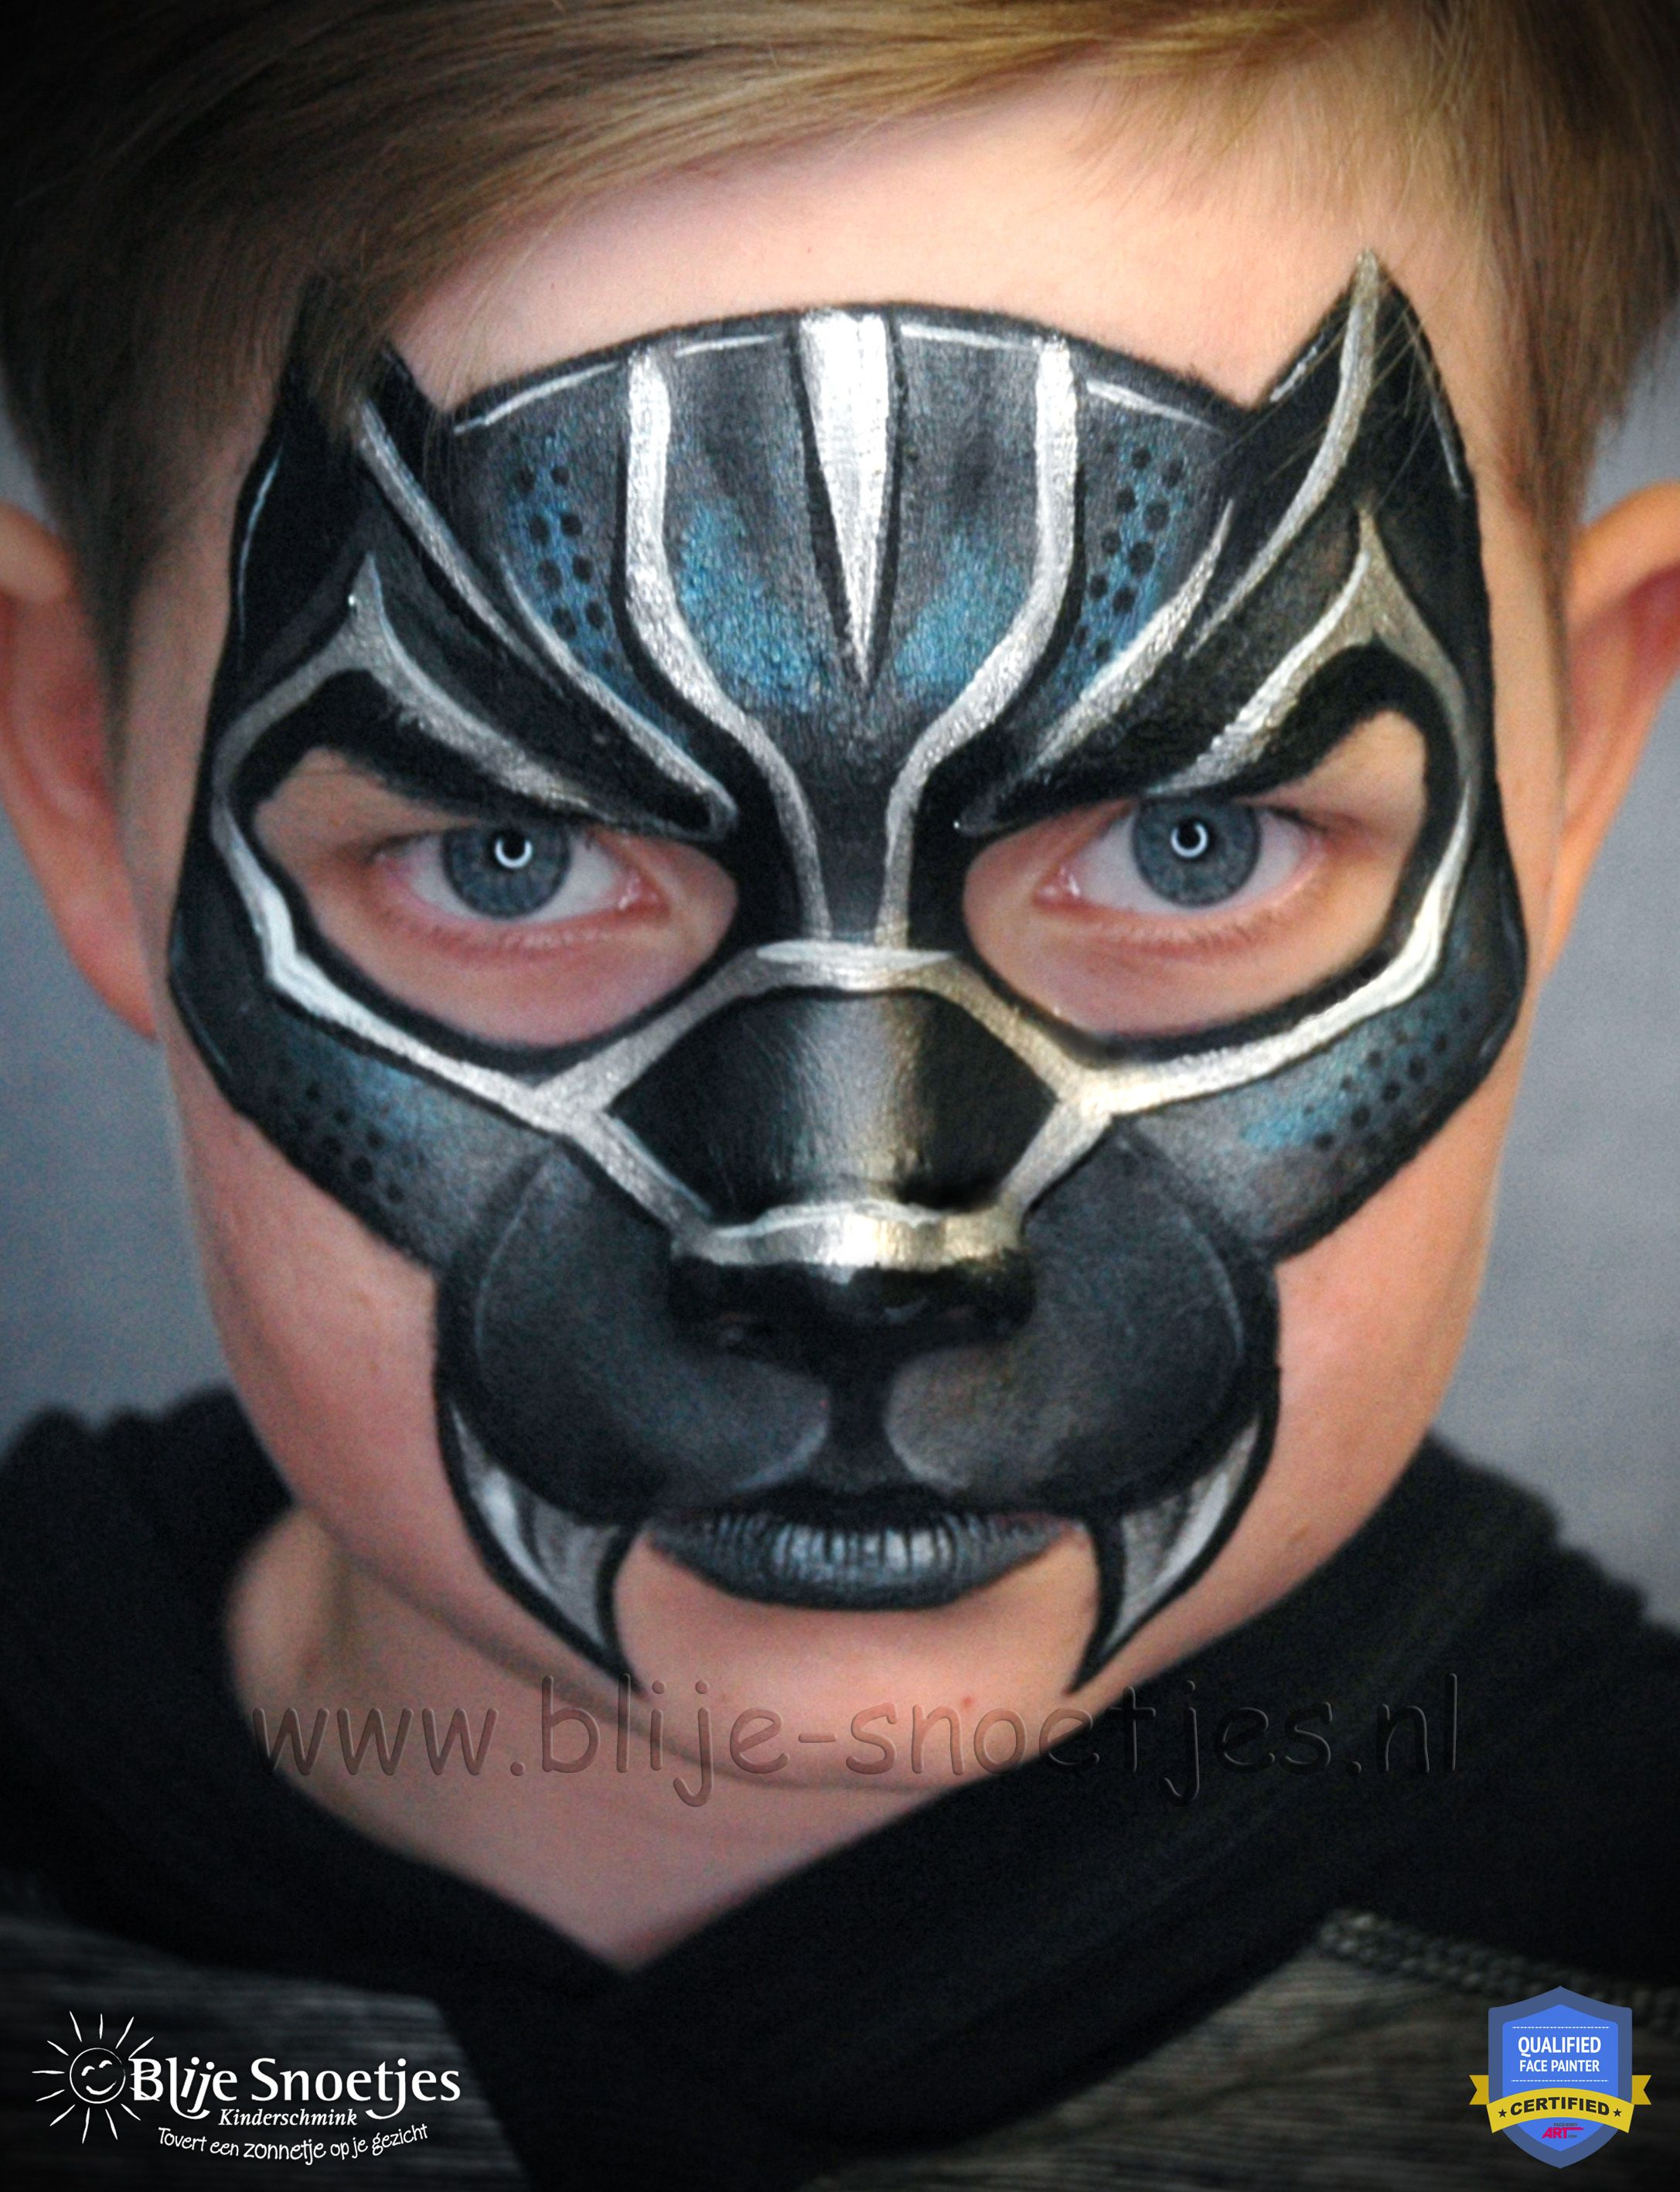 Facepainting Black Panther with a twist. www.blije,snoetjes.nl